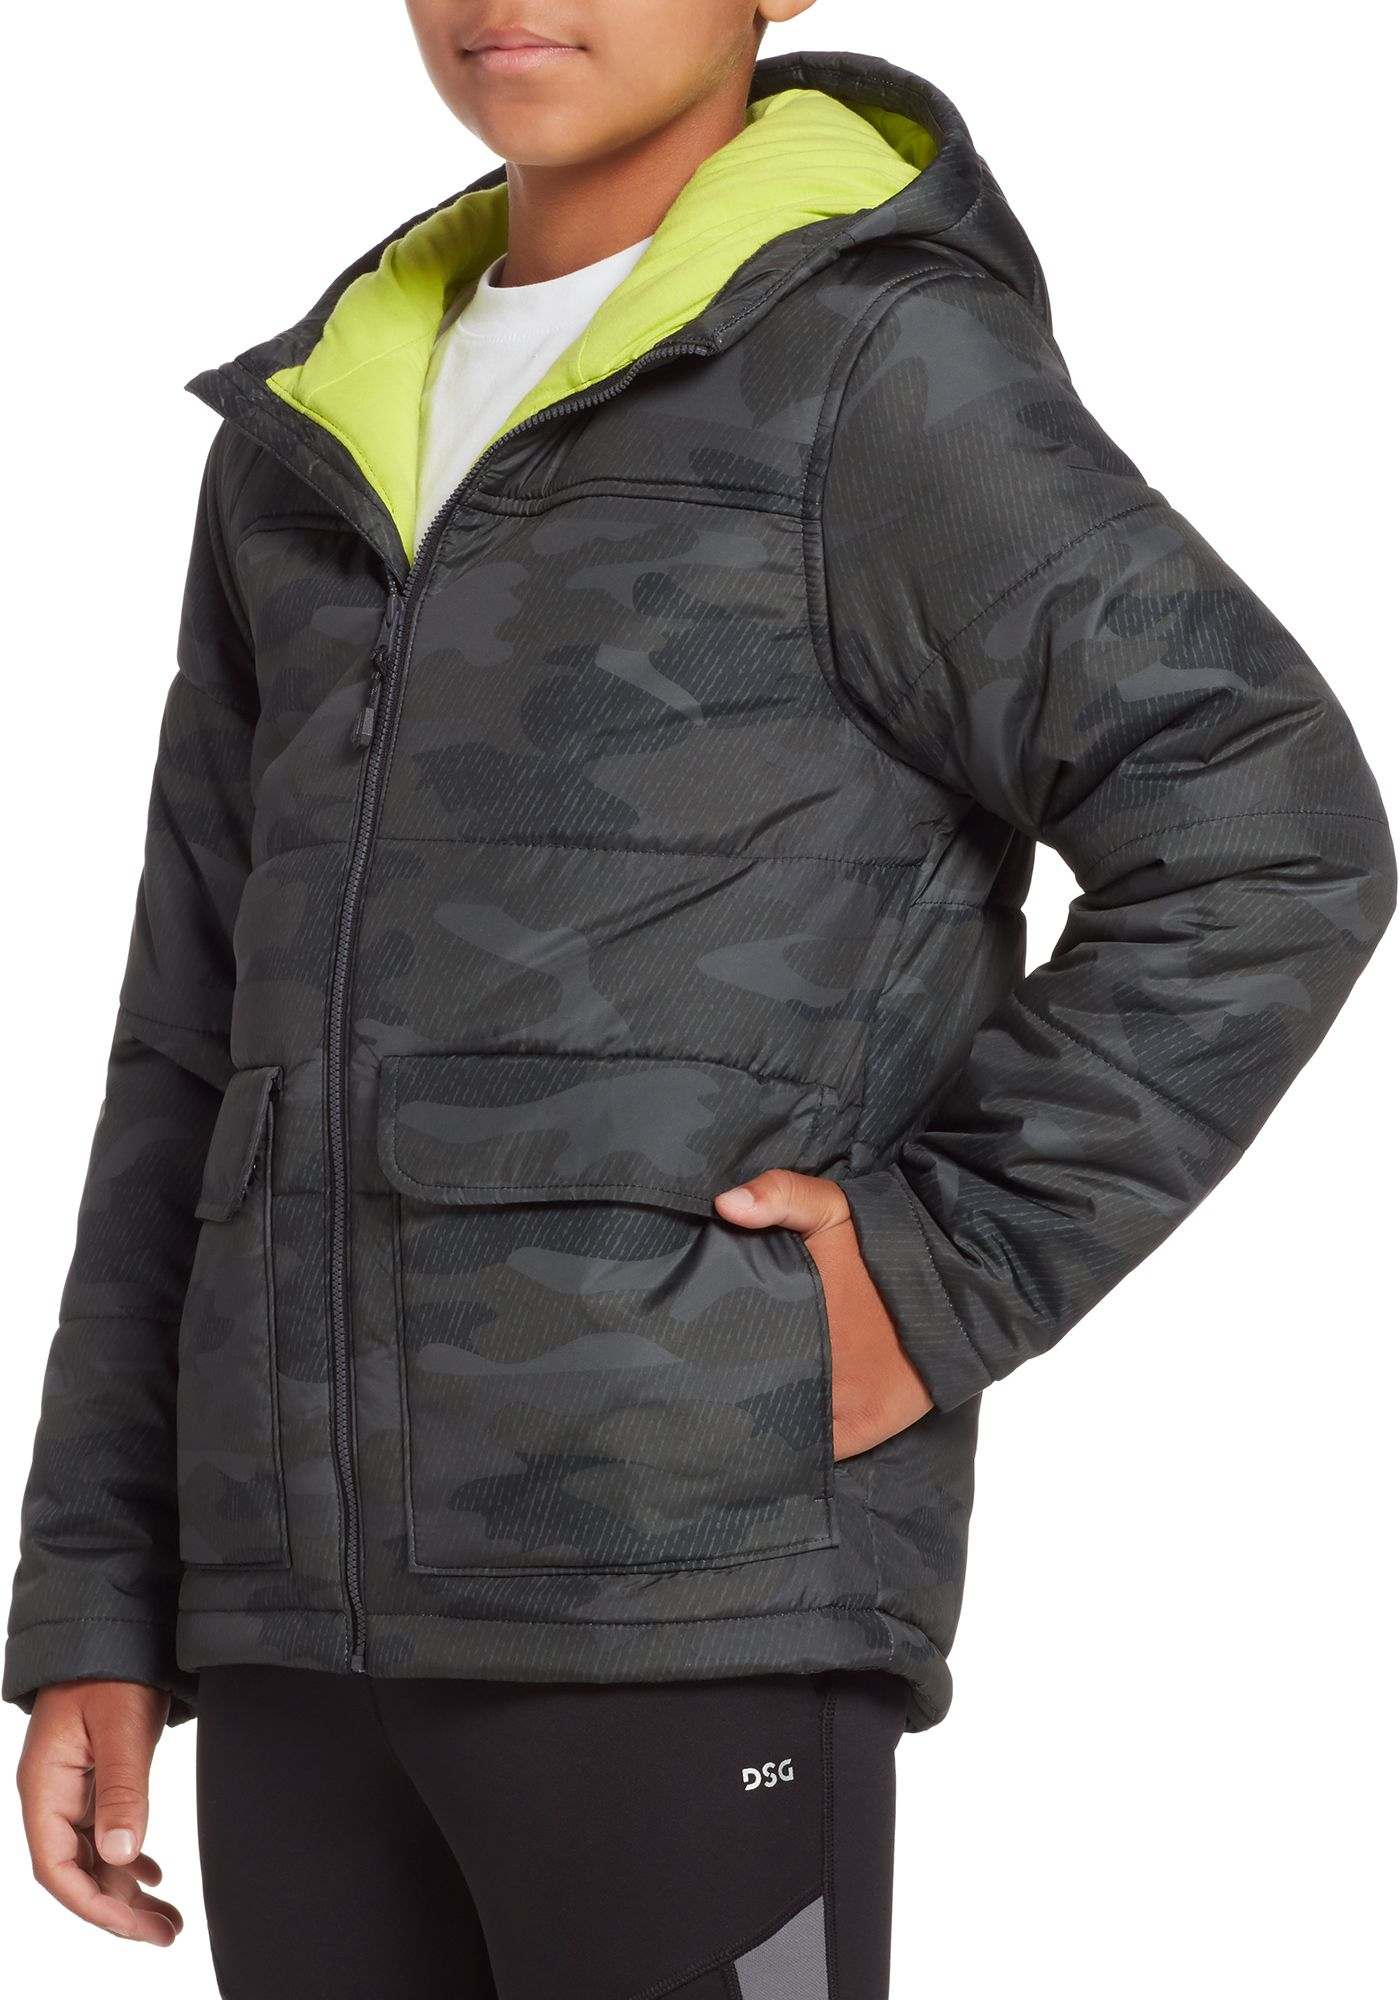 DSG Boys' Printed Insulated Jacket